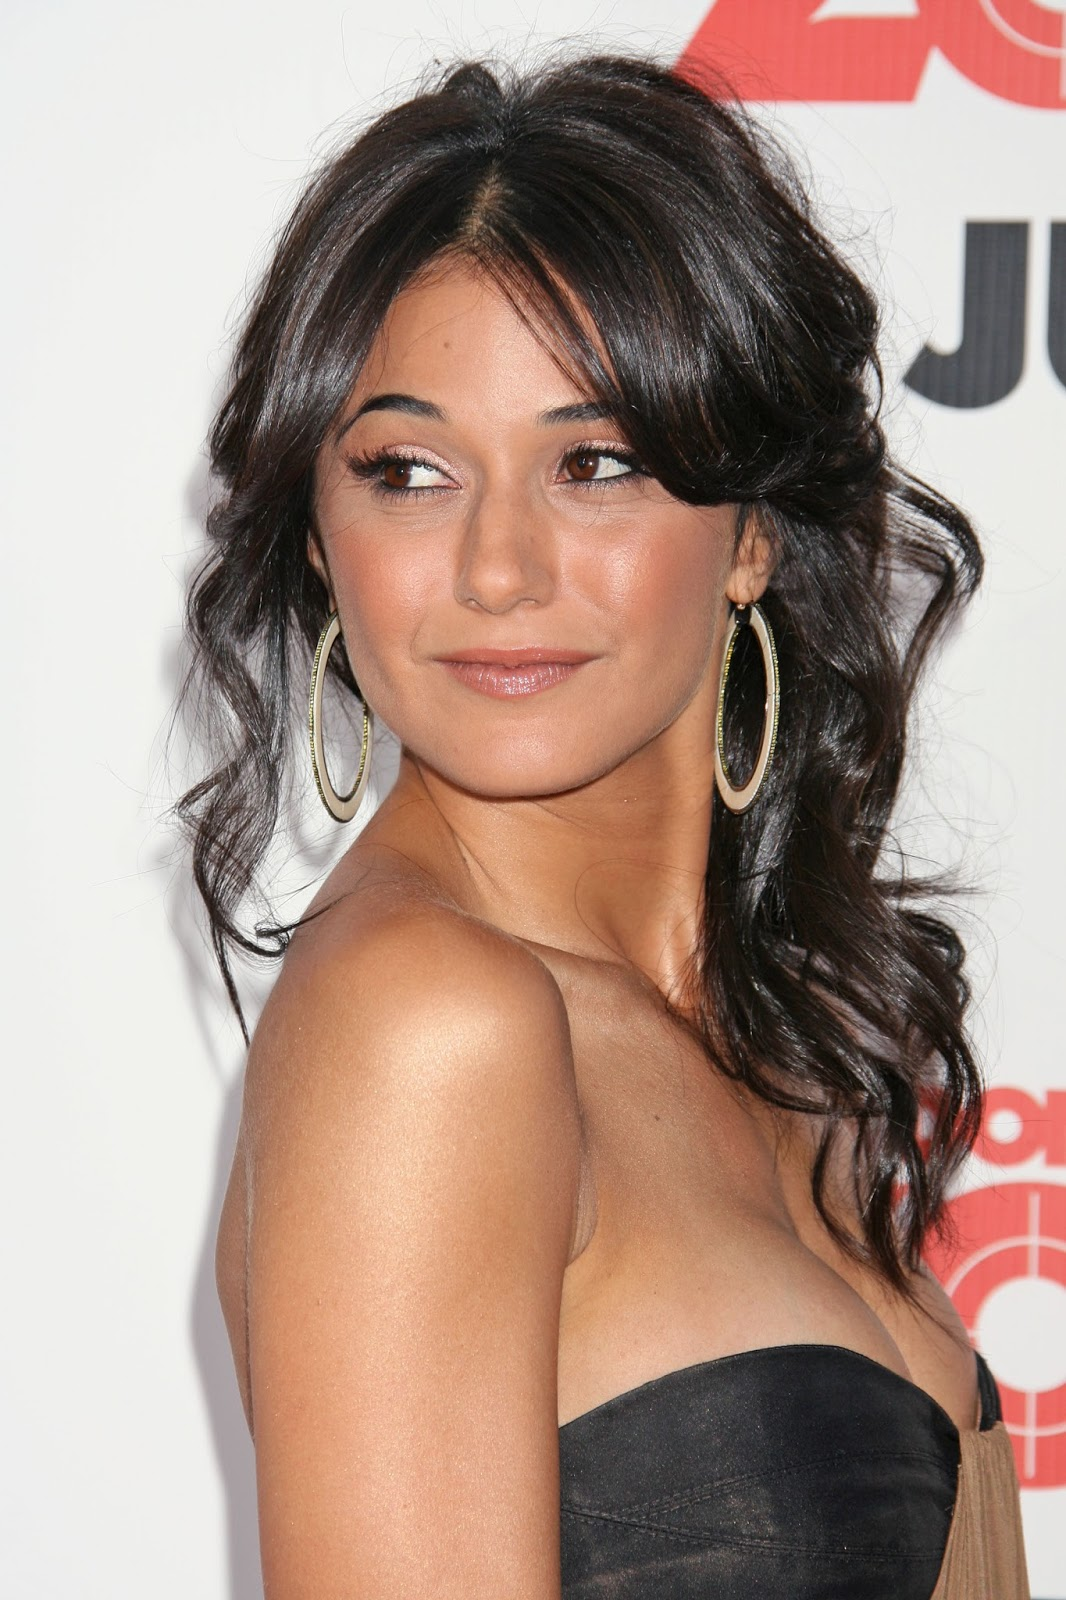 Emmanuelle Chriqui Hot Cleavage Sexy HQ Photos at Premiere ...